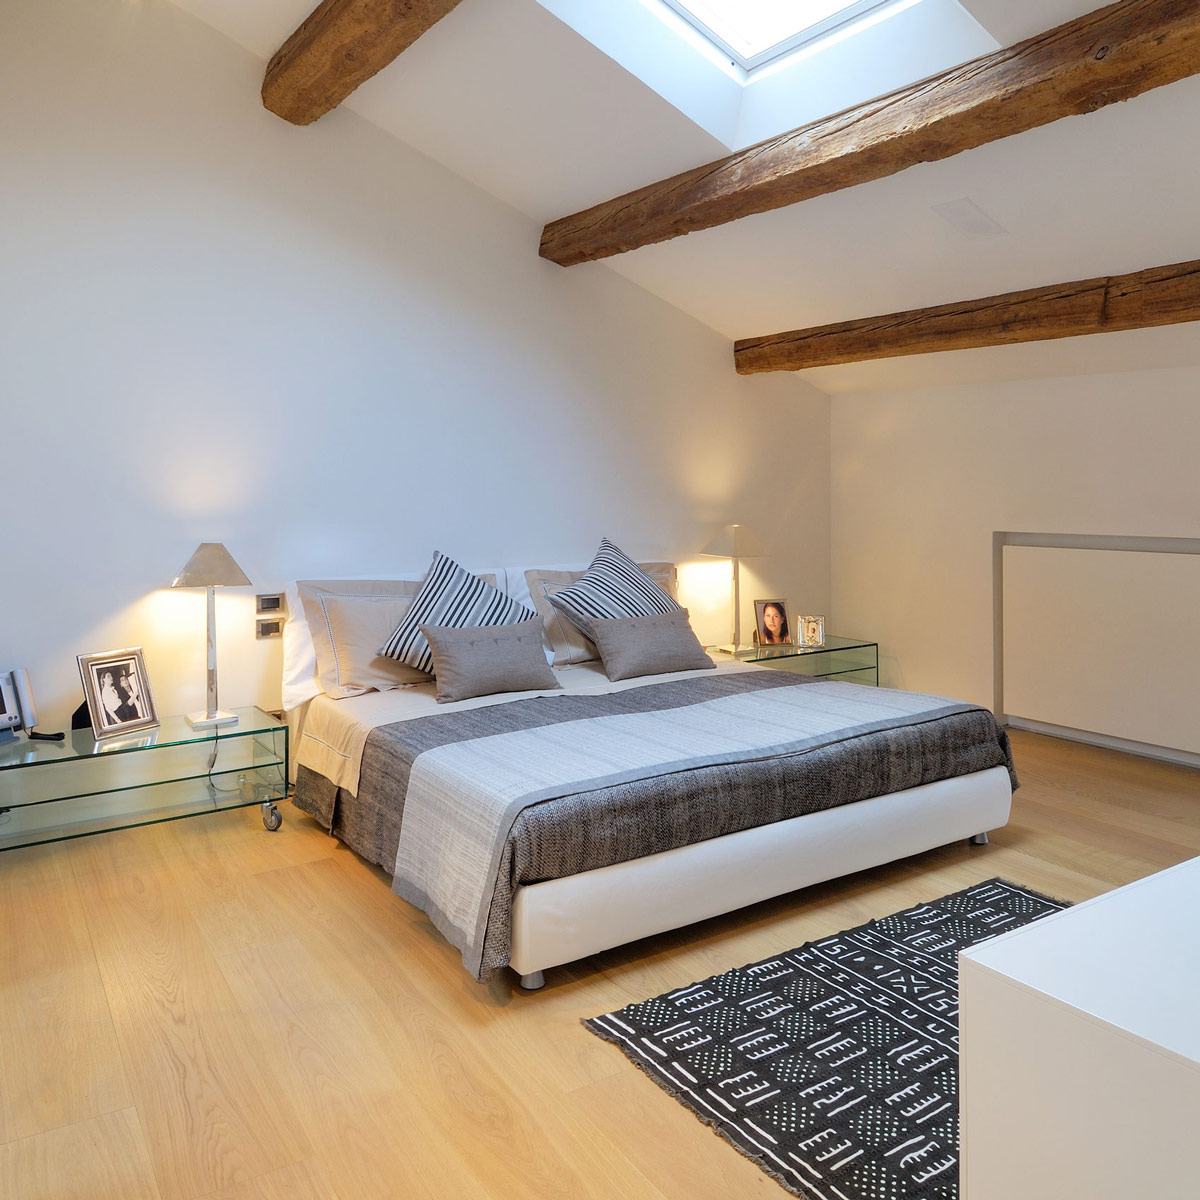 Bedroom, Penthouse in Udine, Italy by Menzo Architettura & Design